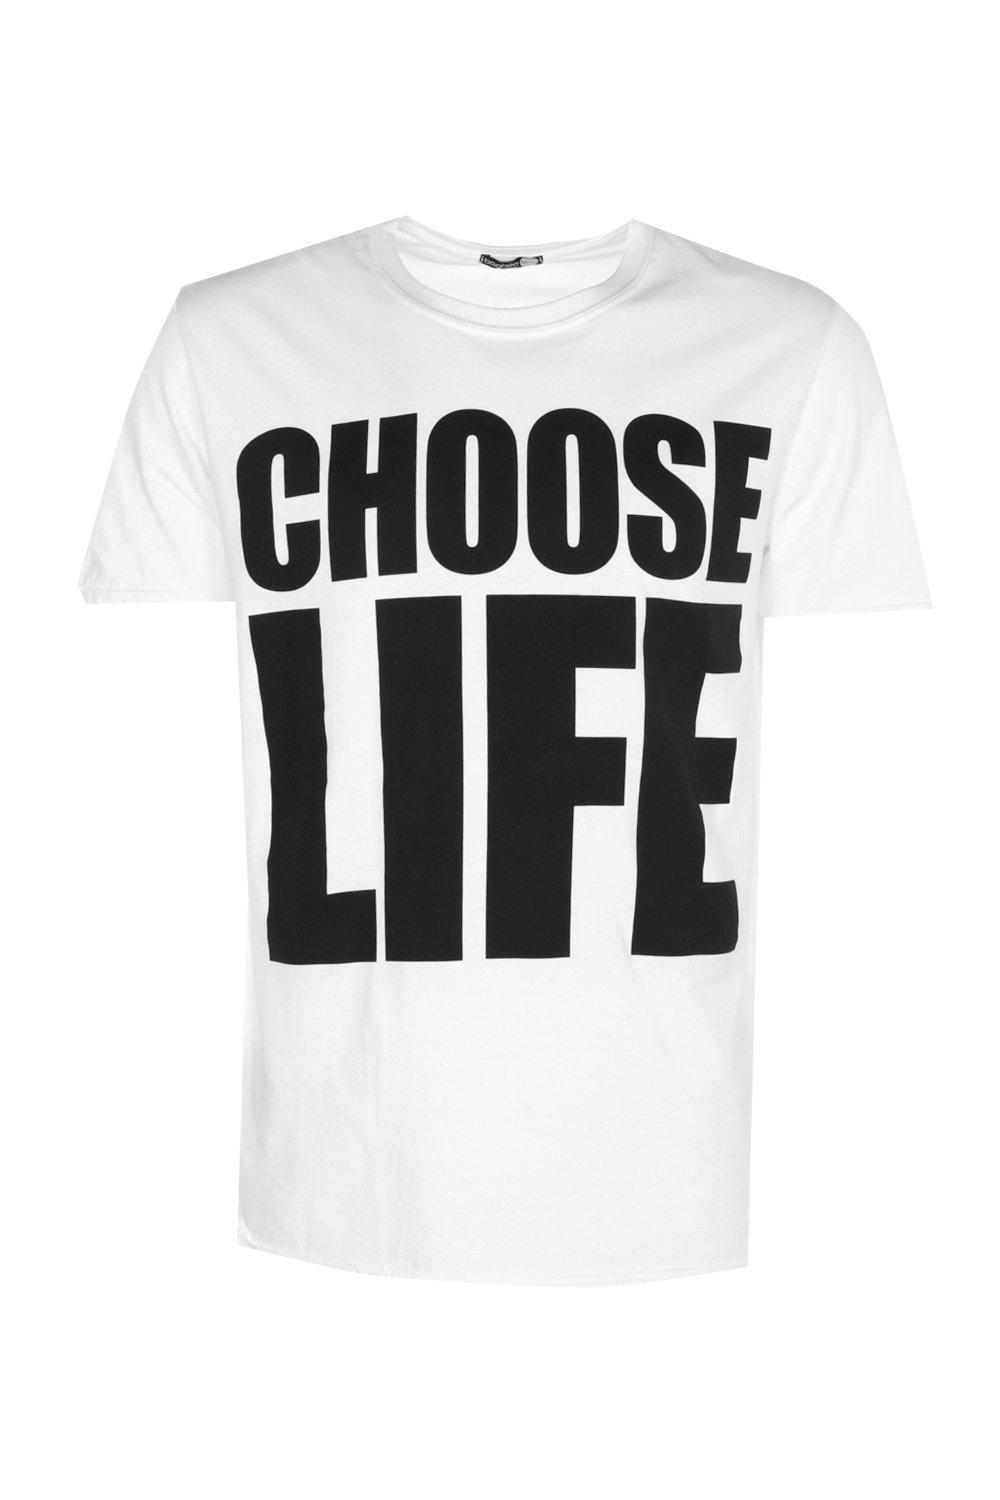 Boohoo Cotton Oversized Choose Life T Shirt In White For Men Lyst